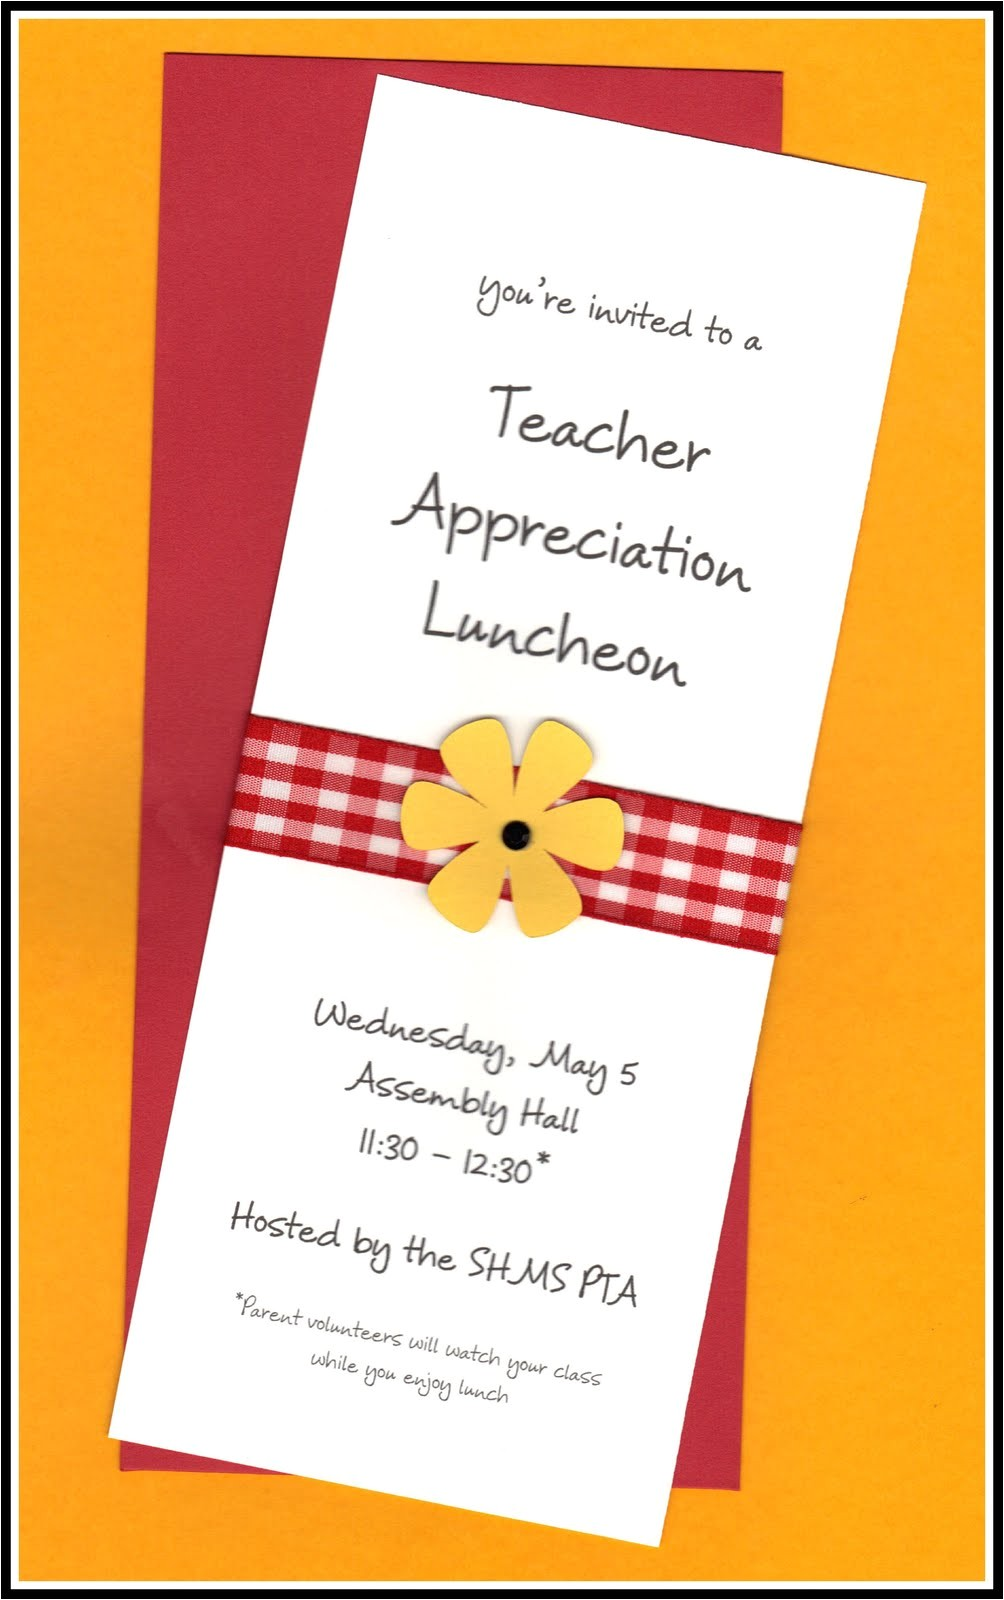 Lunch Party Invitation Wording Staff Appreciation Luncheon Invitation Wording